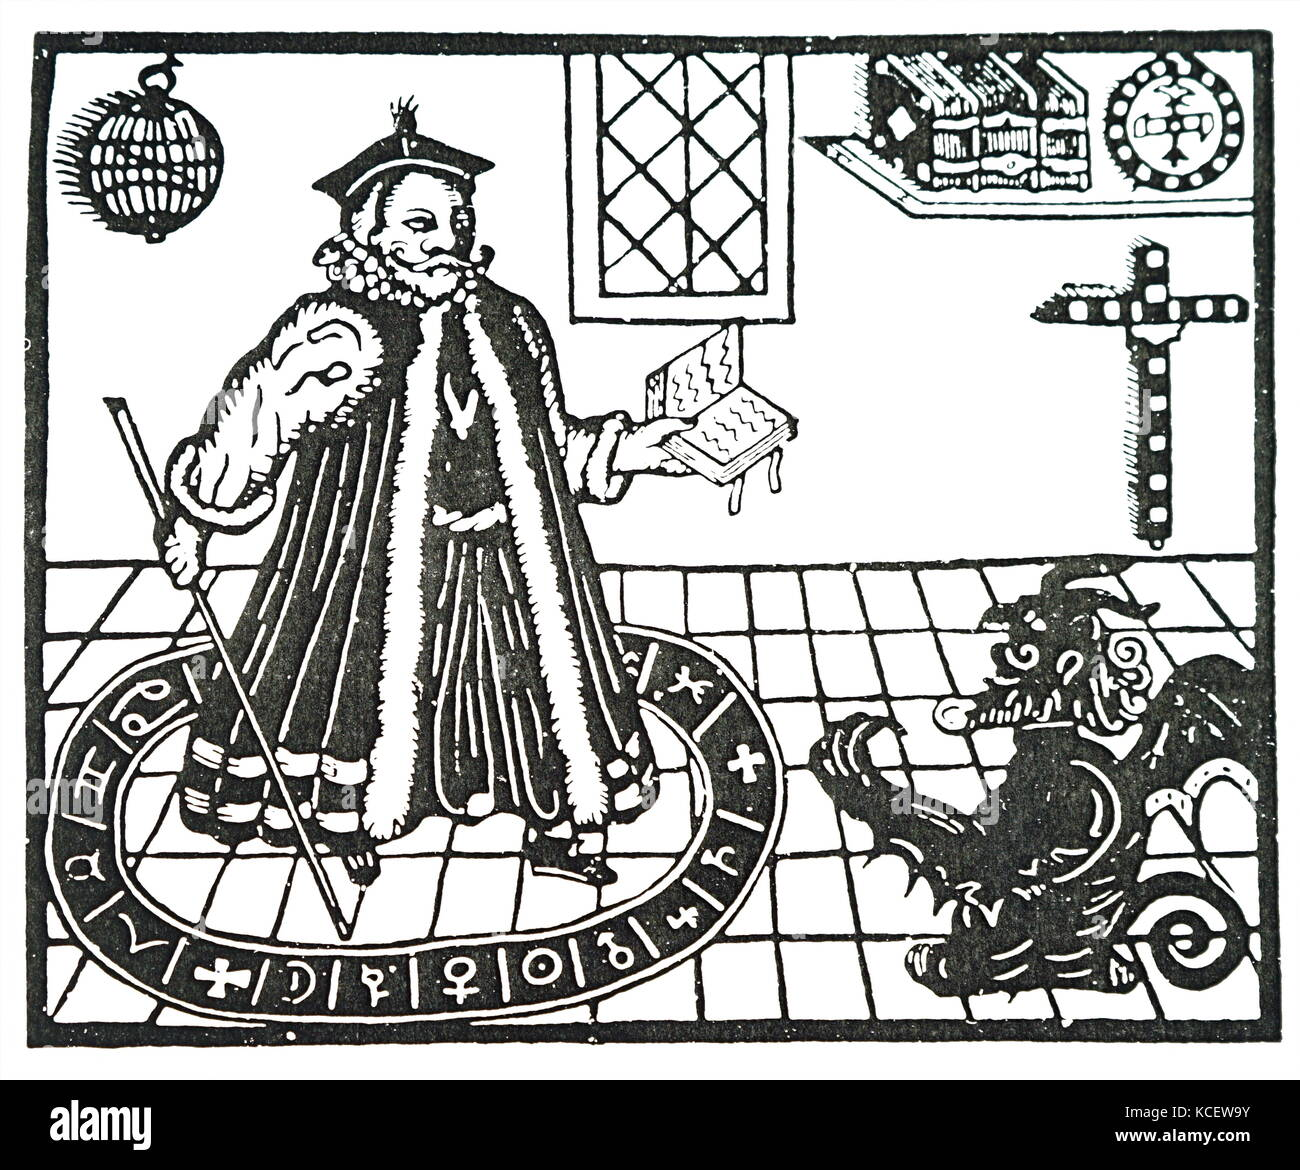 Illustration depicting Mephistopheles appearing to Doctor Faustus from Christopher Marlowe's 'Doctor Faustus'. - Stock Image